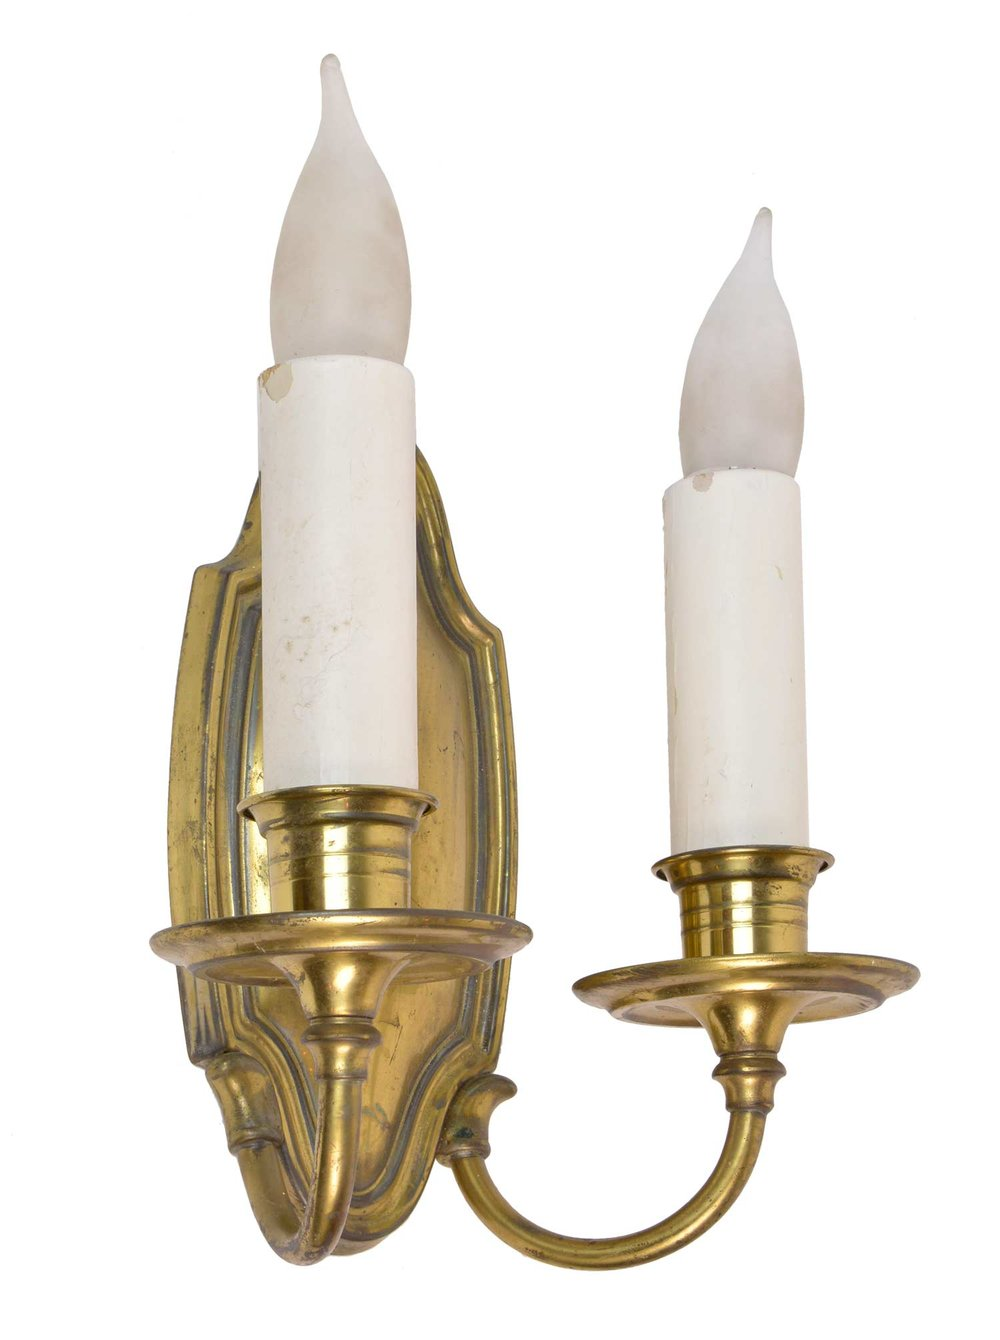 45943-colonial-2-arm-brass-sconce-angle.jpg